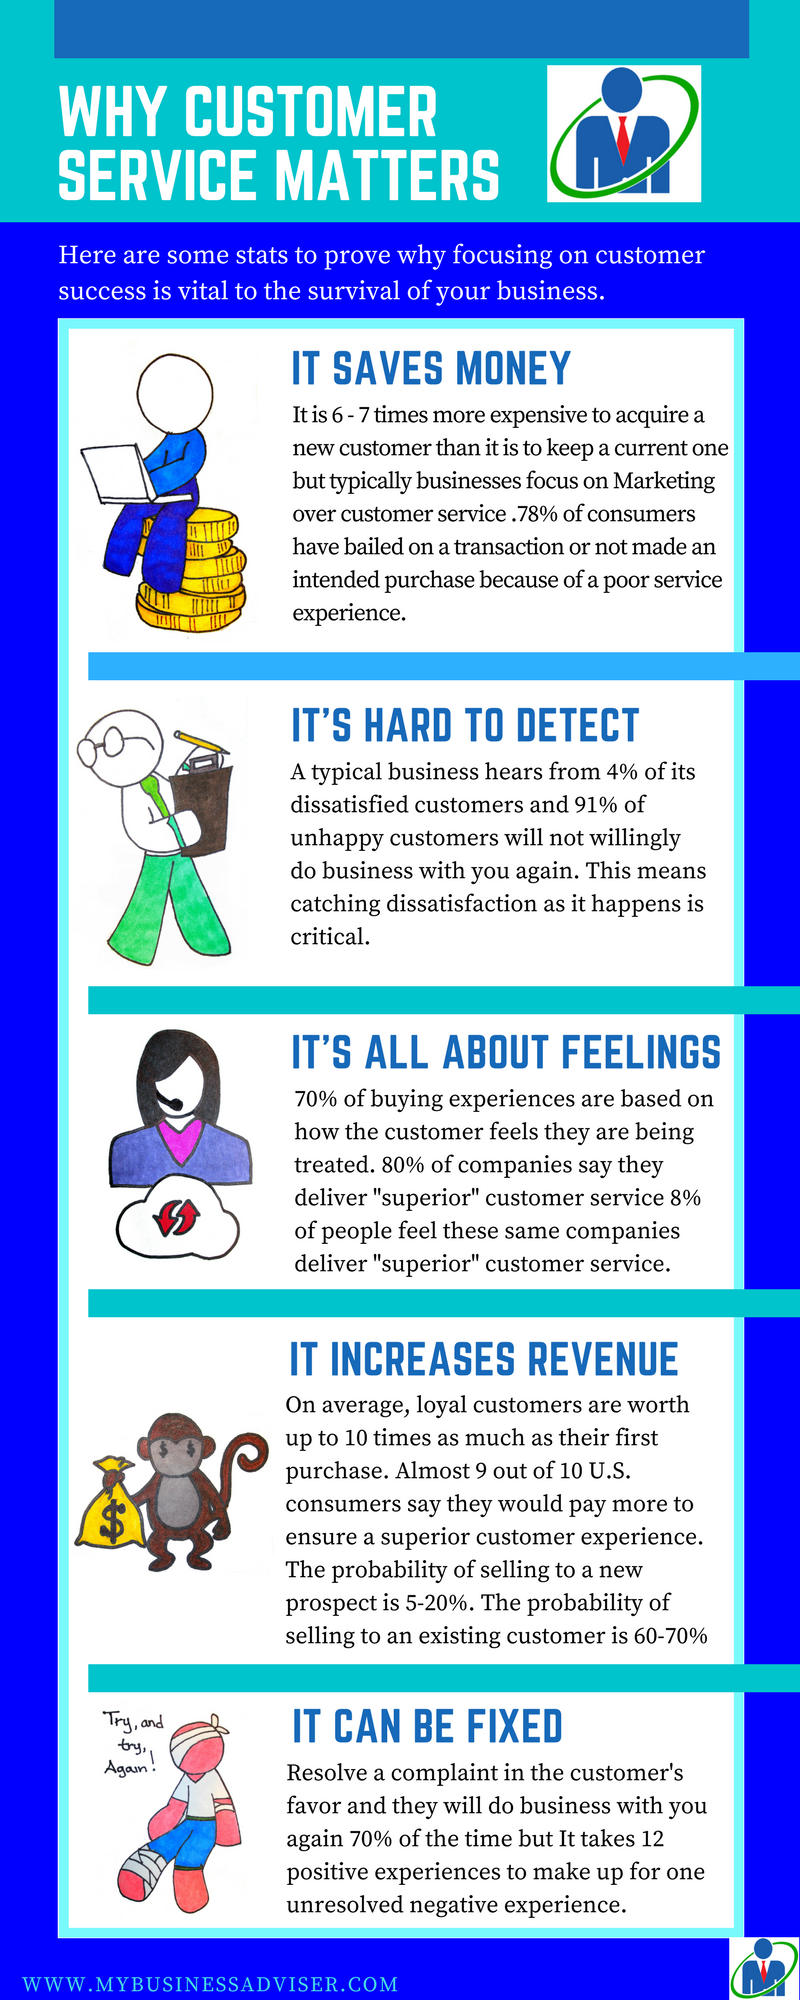 Customer Service - Why Customer Service Matters